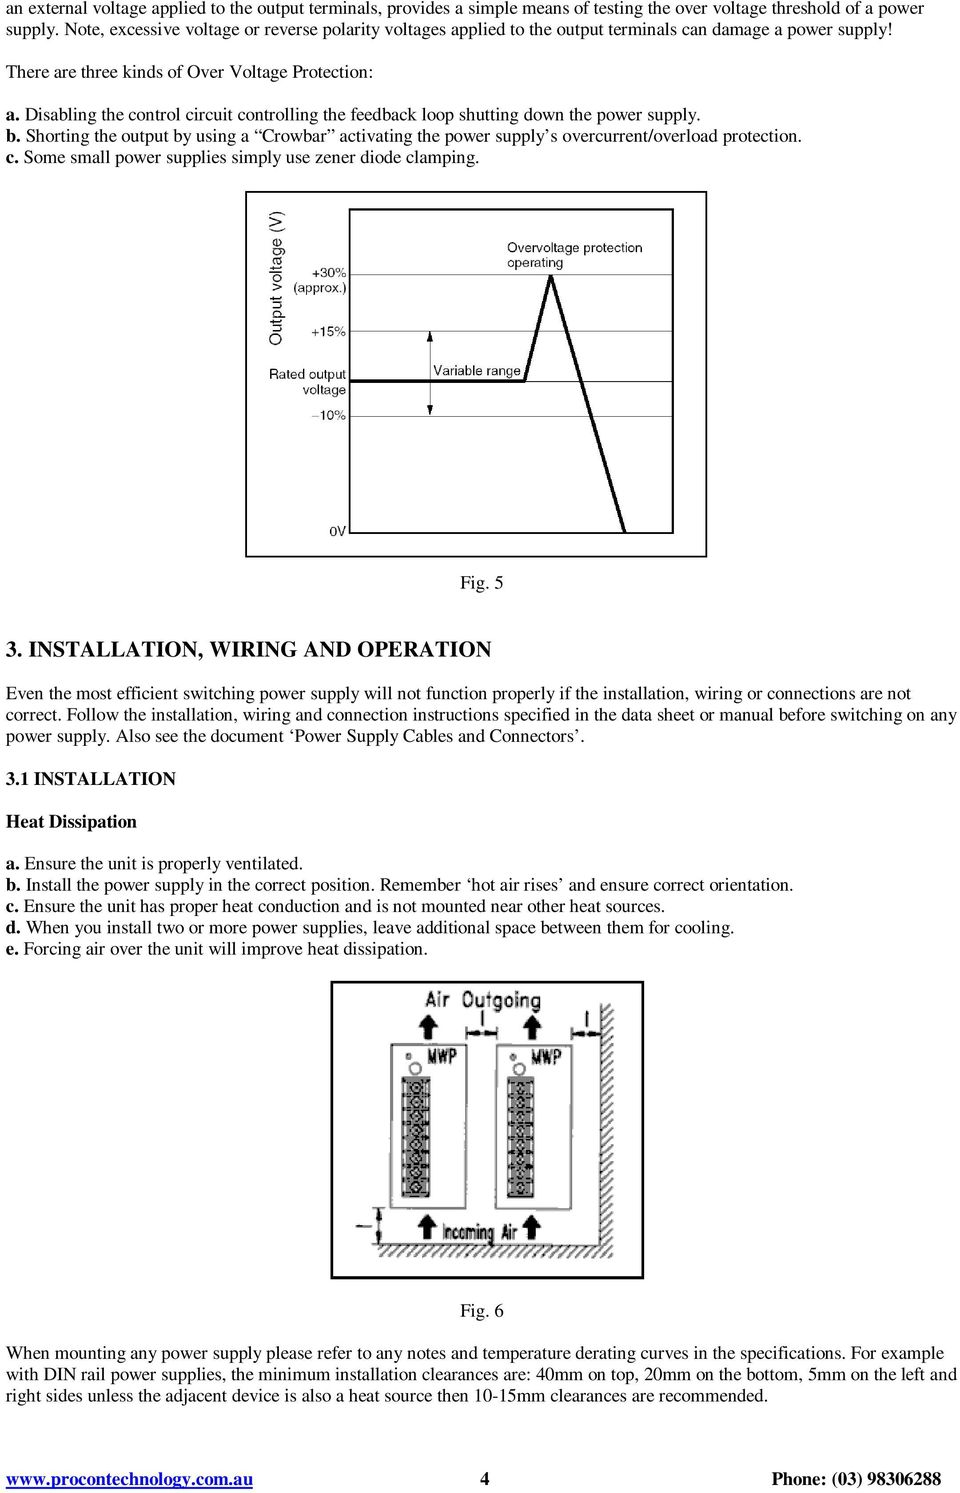 Mean Well Sps User Manual Pdf More Circuit About Simple Power Supply Disabling The Control Controlling Feedback Loop Shutting Down B